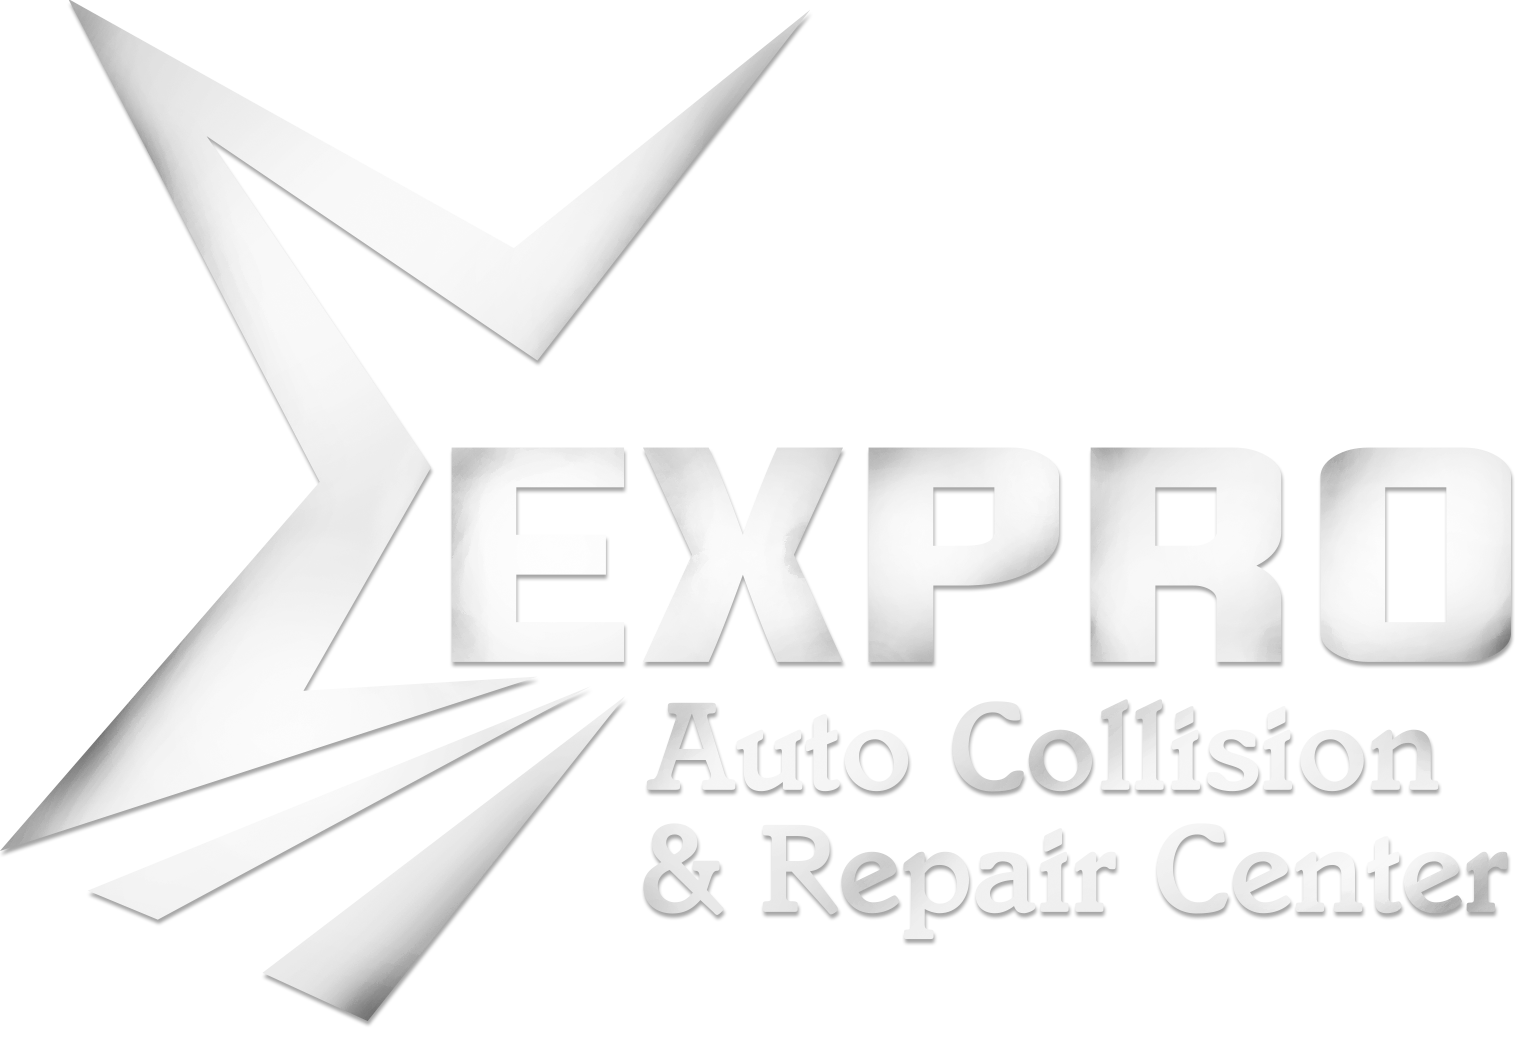 Auto Collision and Repair Center